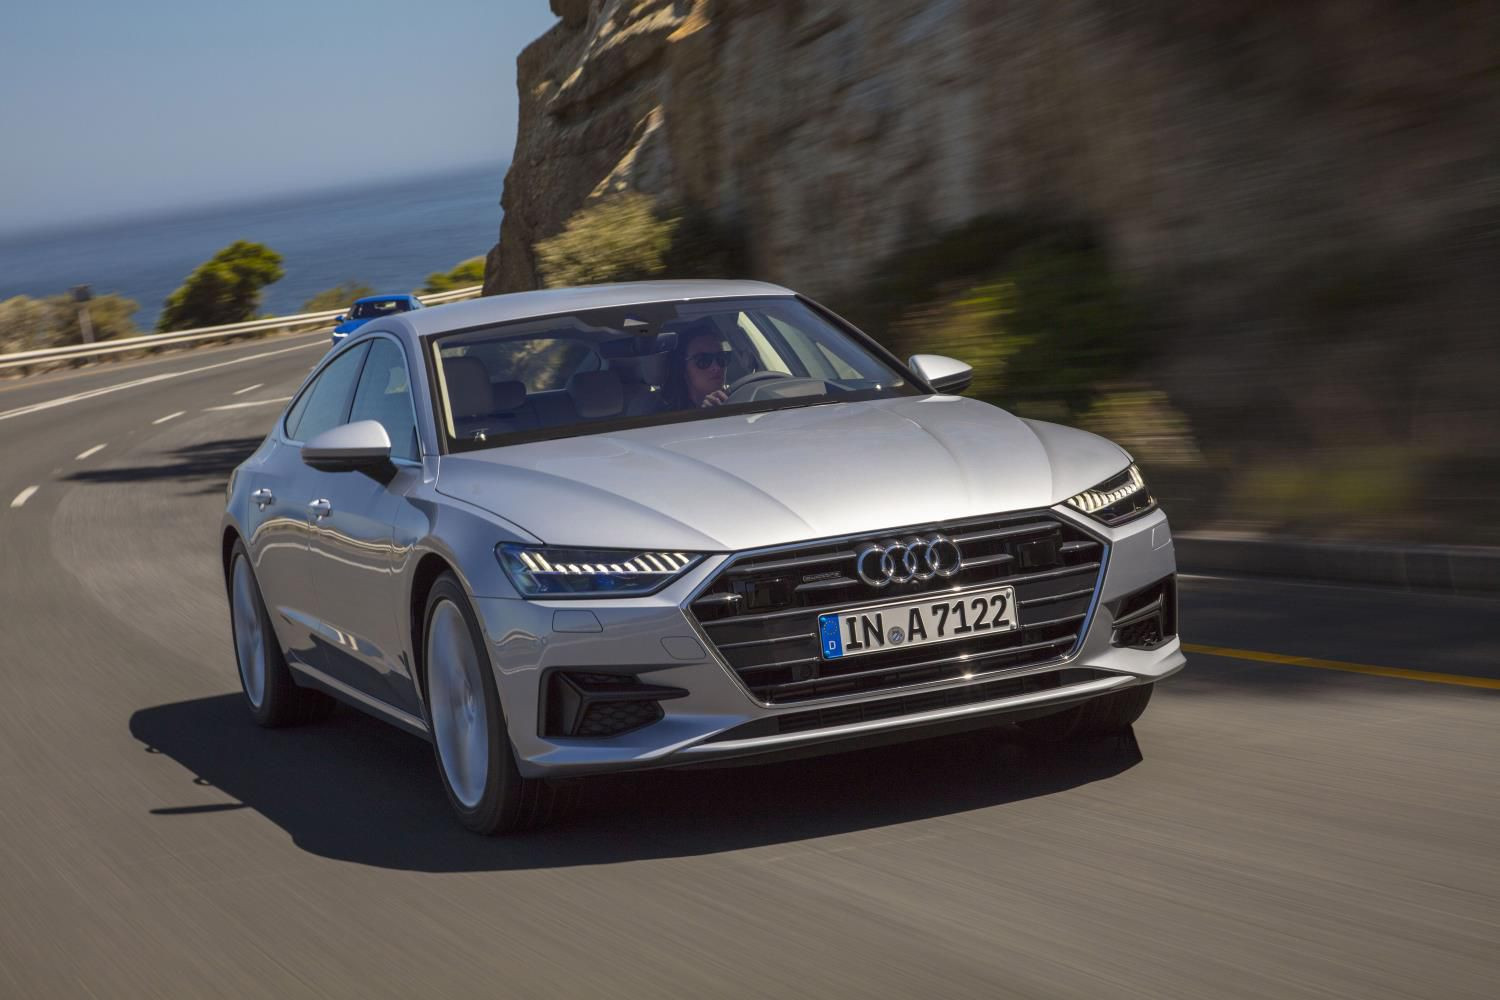 Silver Audi A7 sportback driving towards you